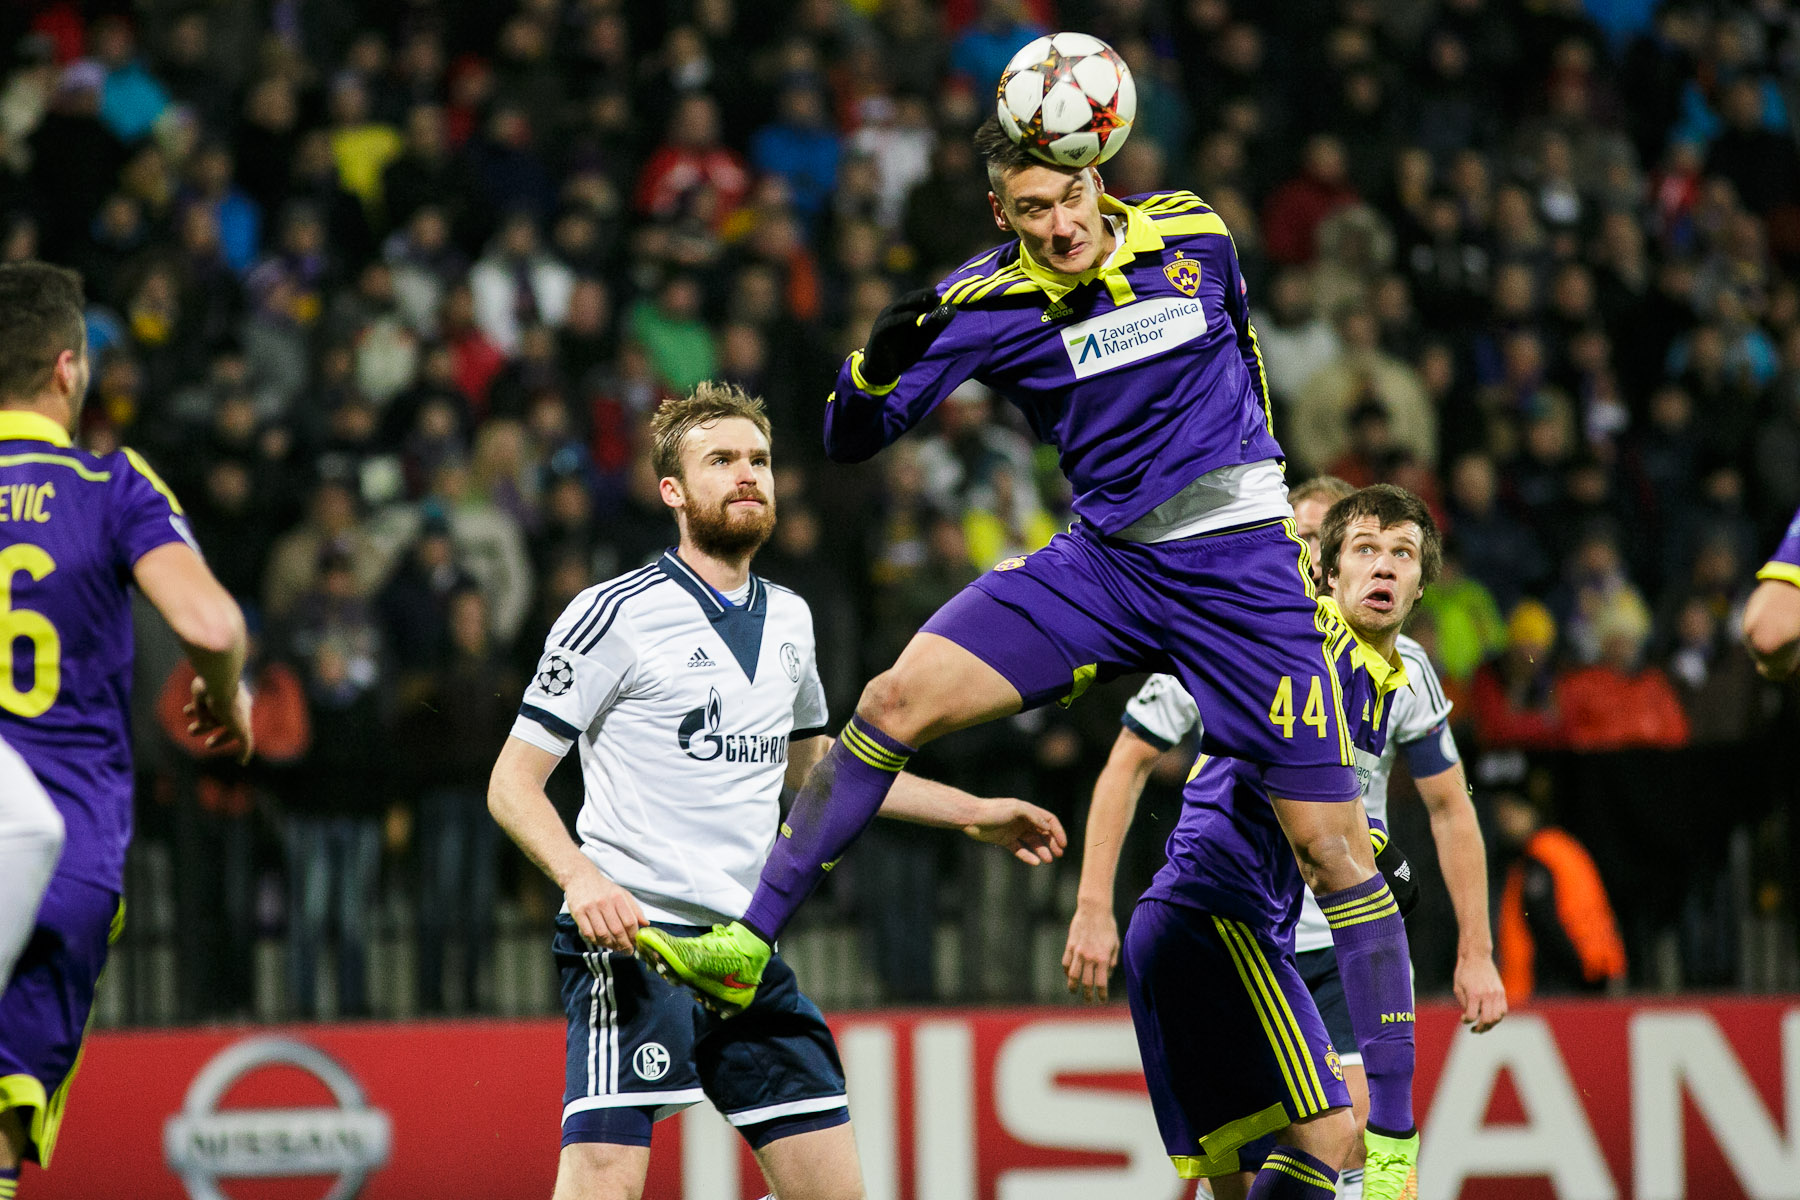 Arghus of NK Maribor in action during the UEFA Champions League Group G match on December 10 in Maribor, Slovenia.